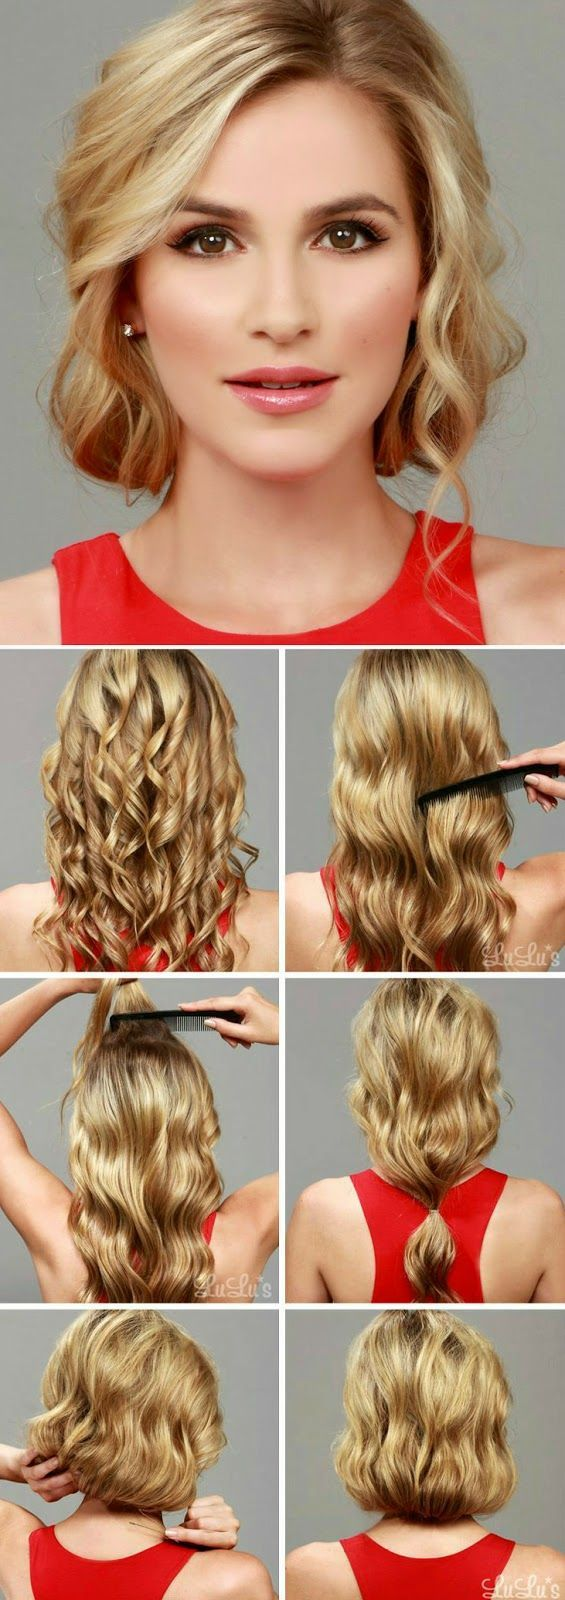 How-To: Faux Bob Hair Tutorial https://thepageantplanet.com/top-25-pageant-questions-of-2014/